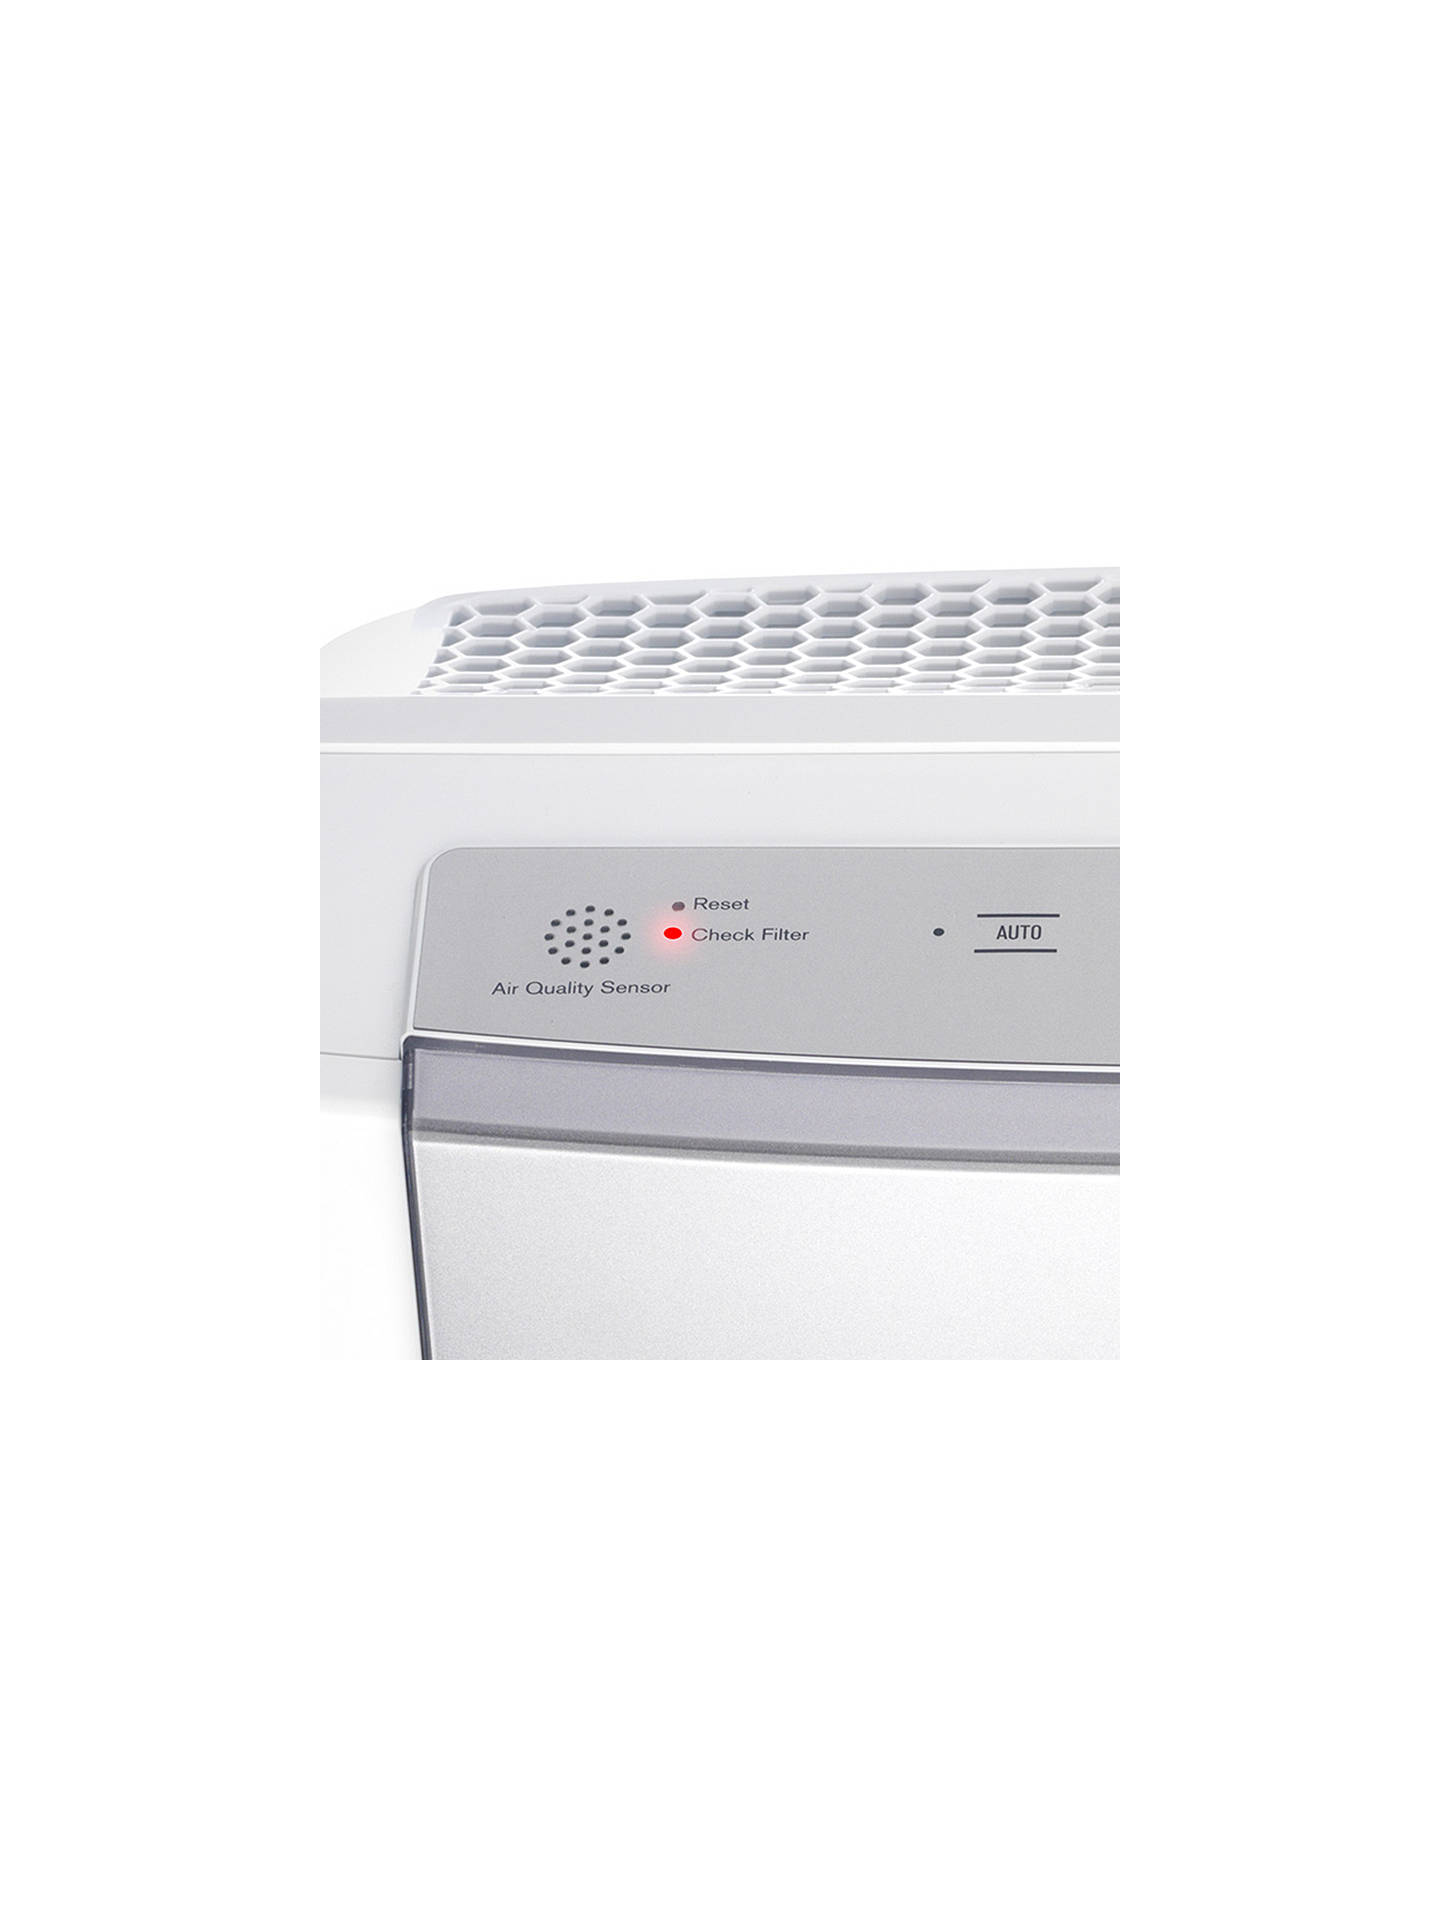 Electrolux EAP300 Air Cleaner with HEPA Filter, White at John Lewis